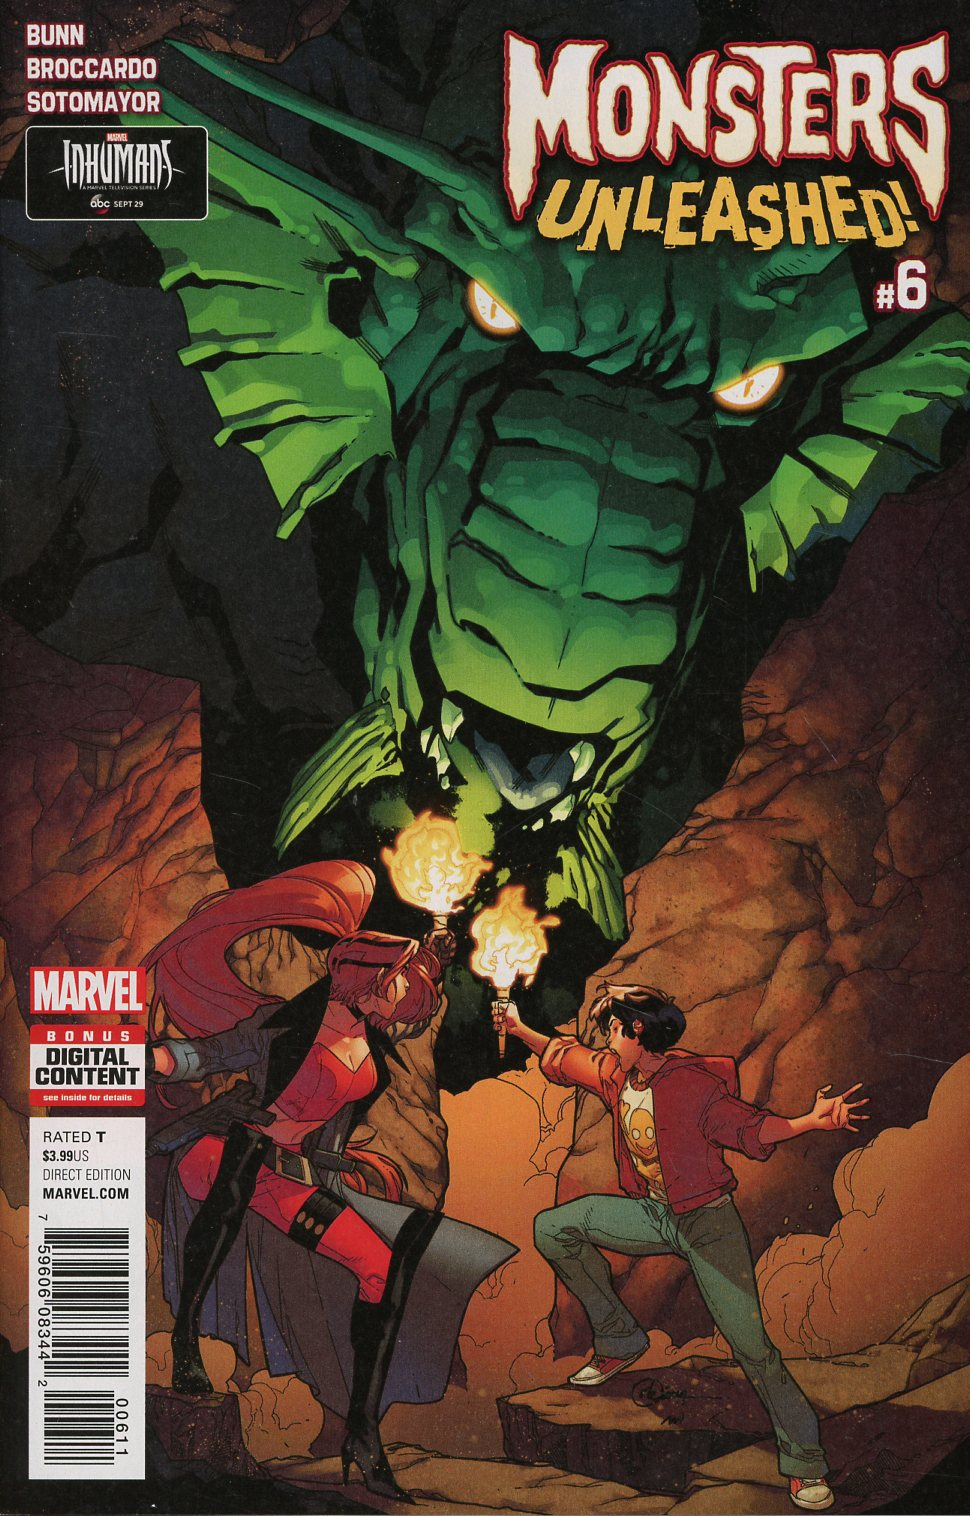 Monsters Unleashed Vol 2 #6 Cover A Regular RB Silva Cover